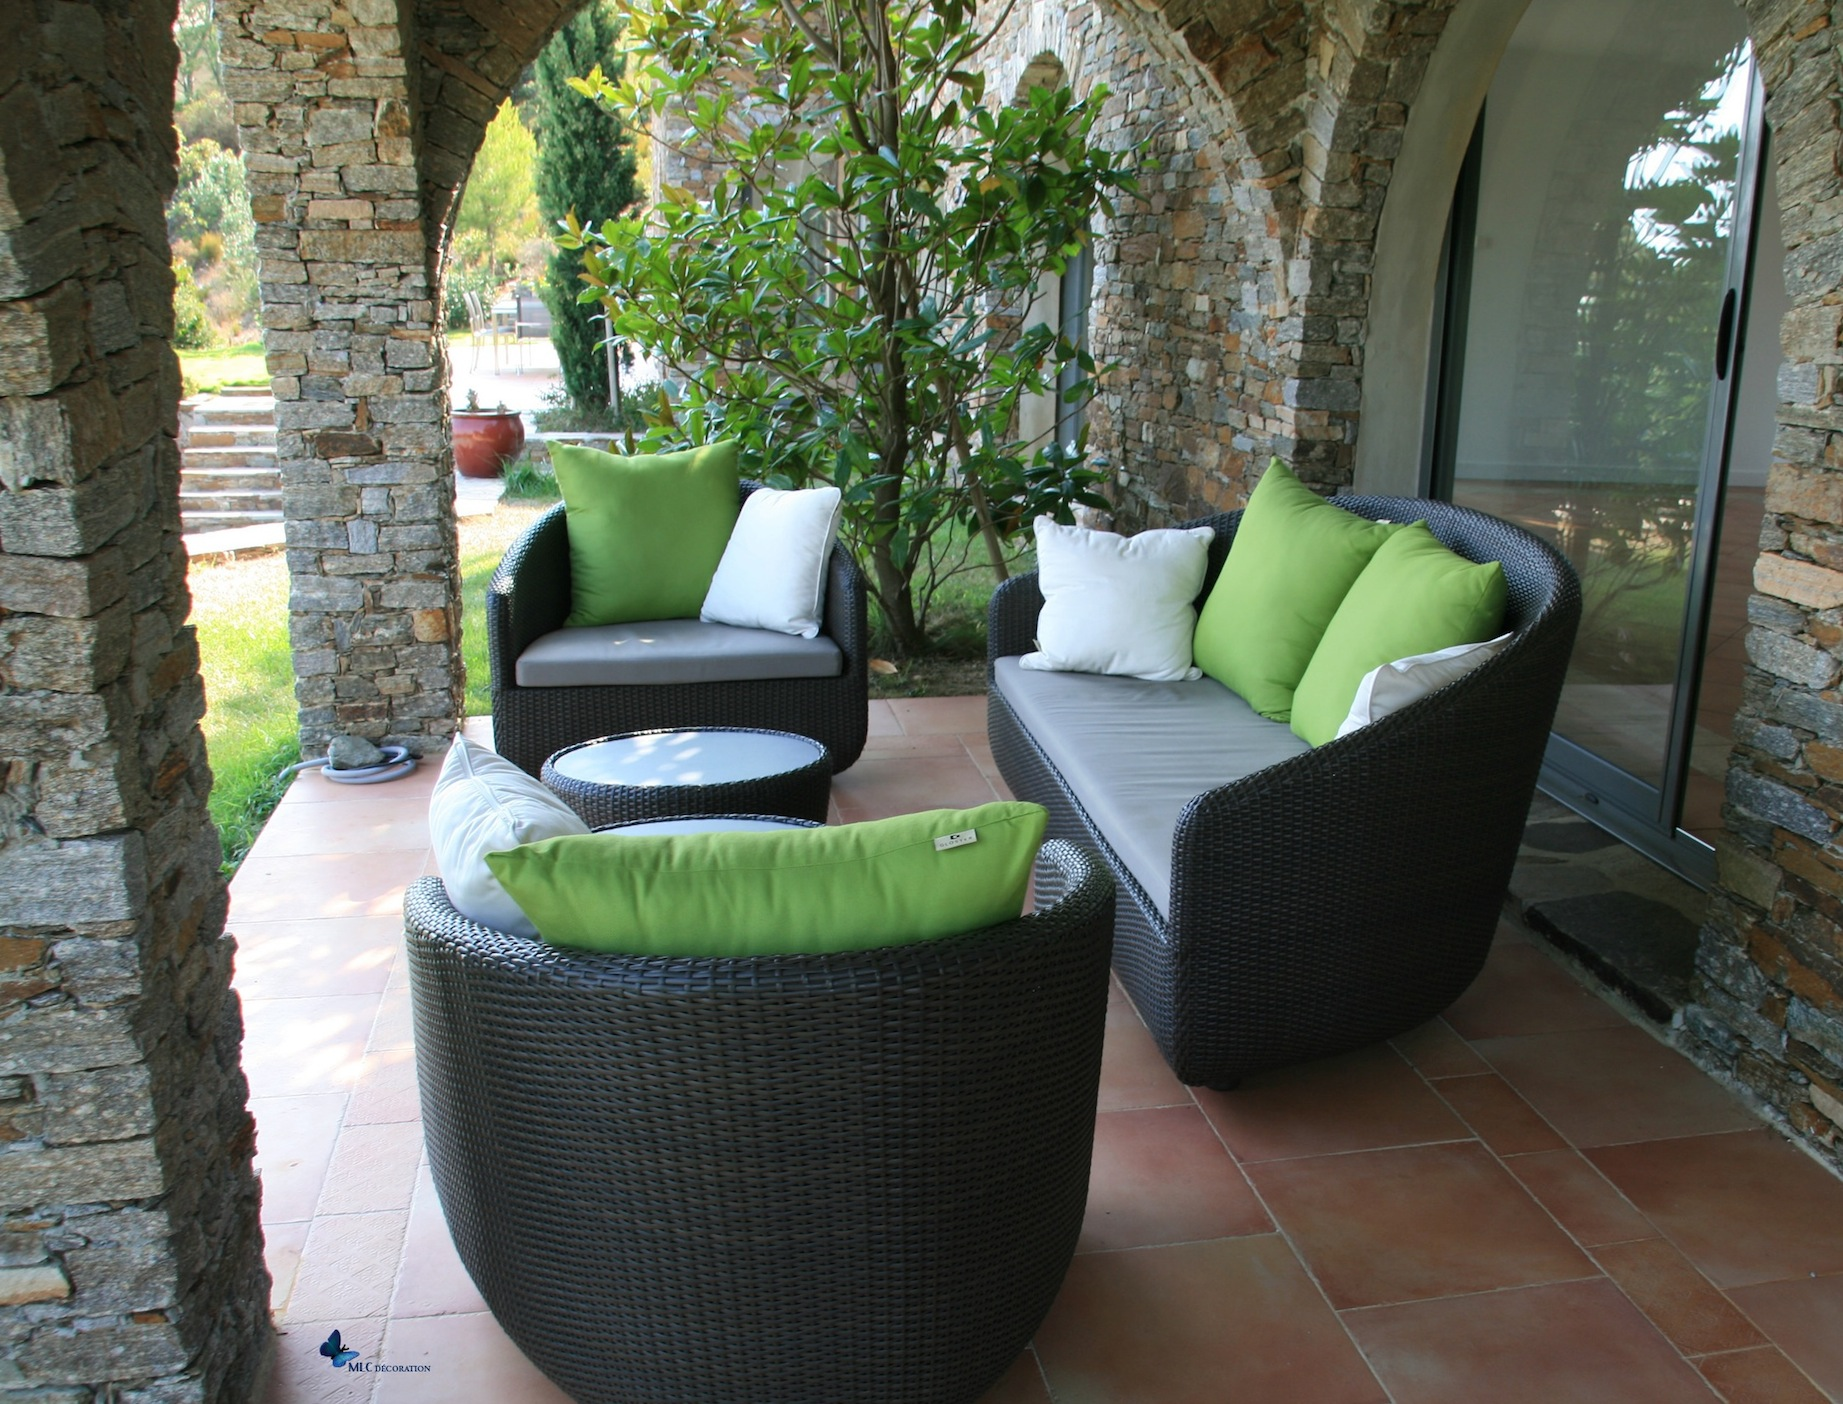 Design Exterieur Jardin Of Canap Ext Rieur Design Archives Le Blog D Co De Mlc